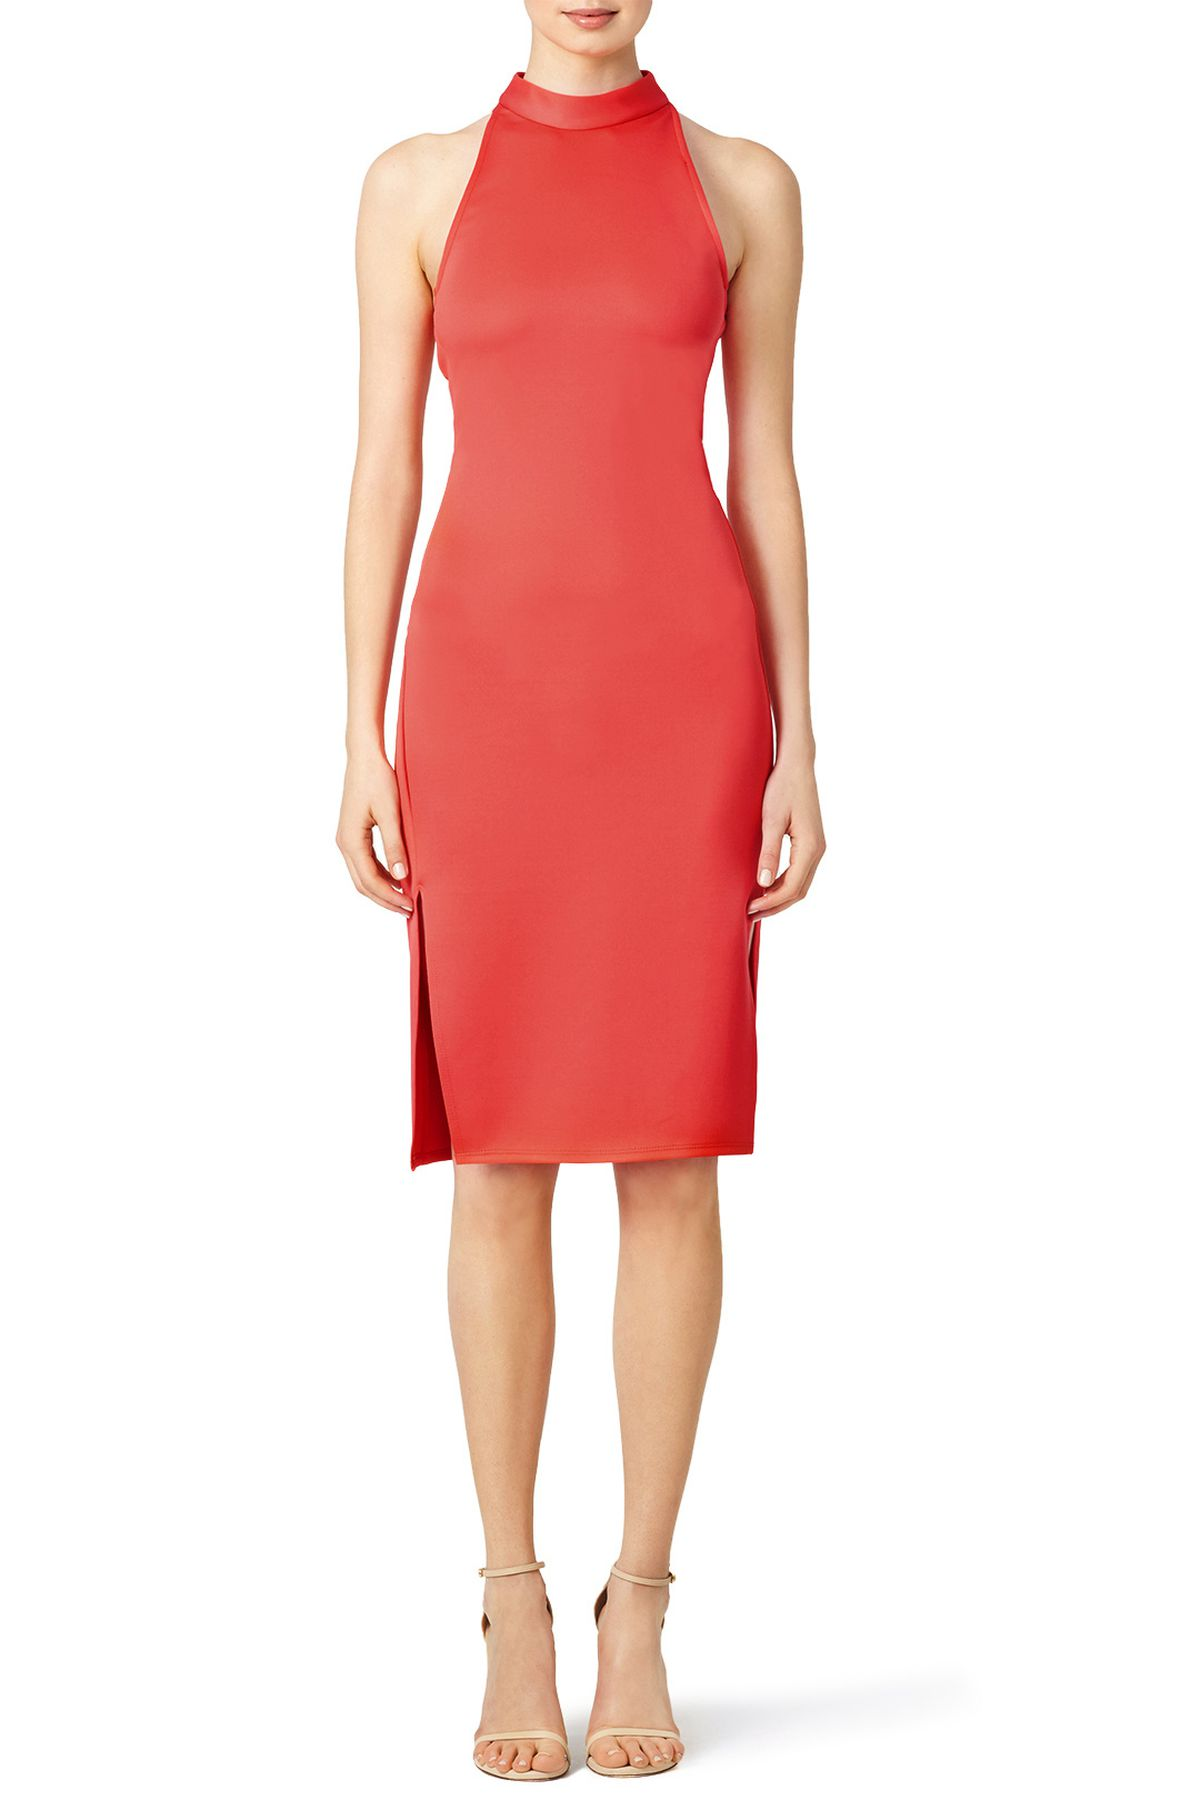 Rent the Runway\'s Clearance Sale Has Dozens of Dresses Under $100 ...